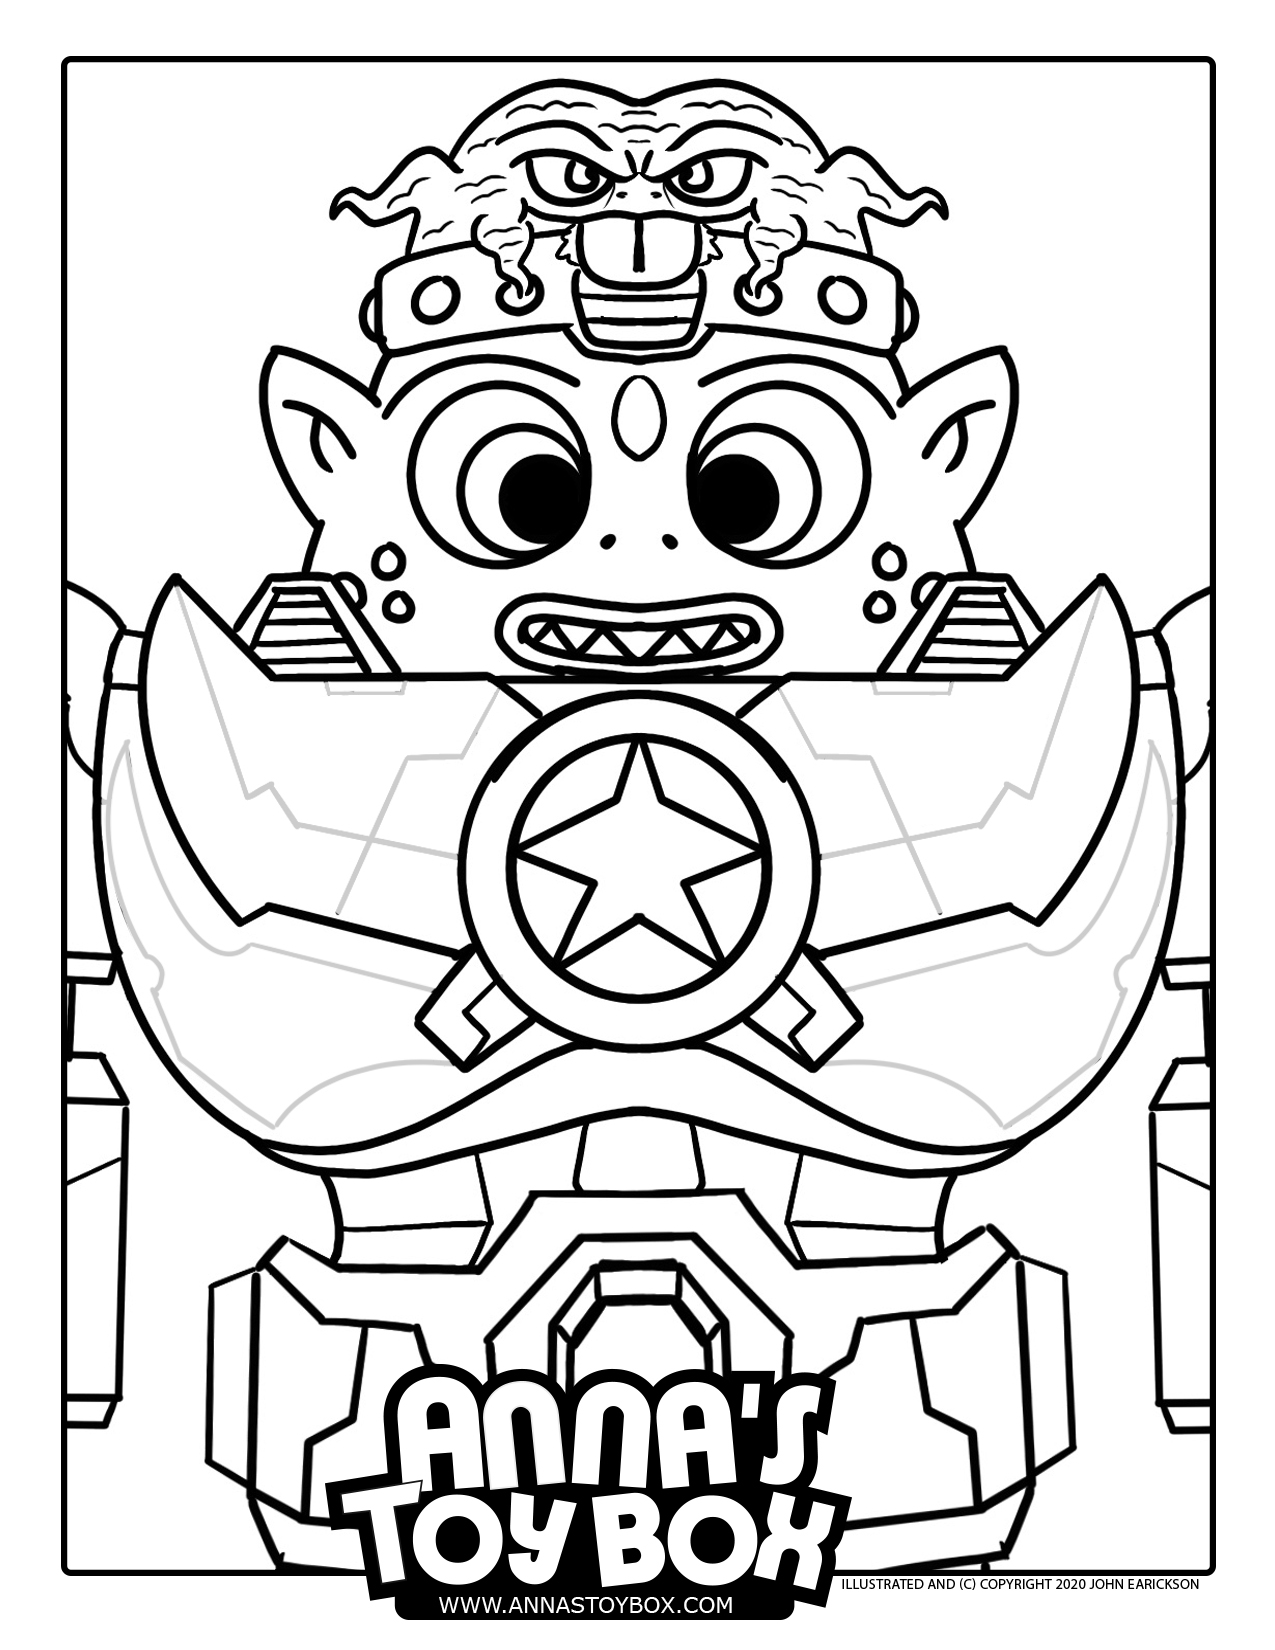 Alien Robot Warrior Coloring Page